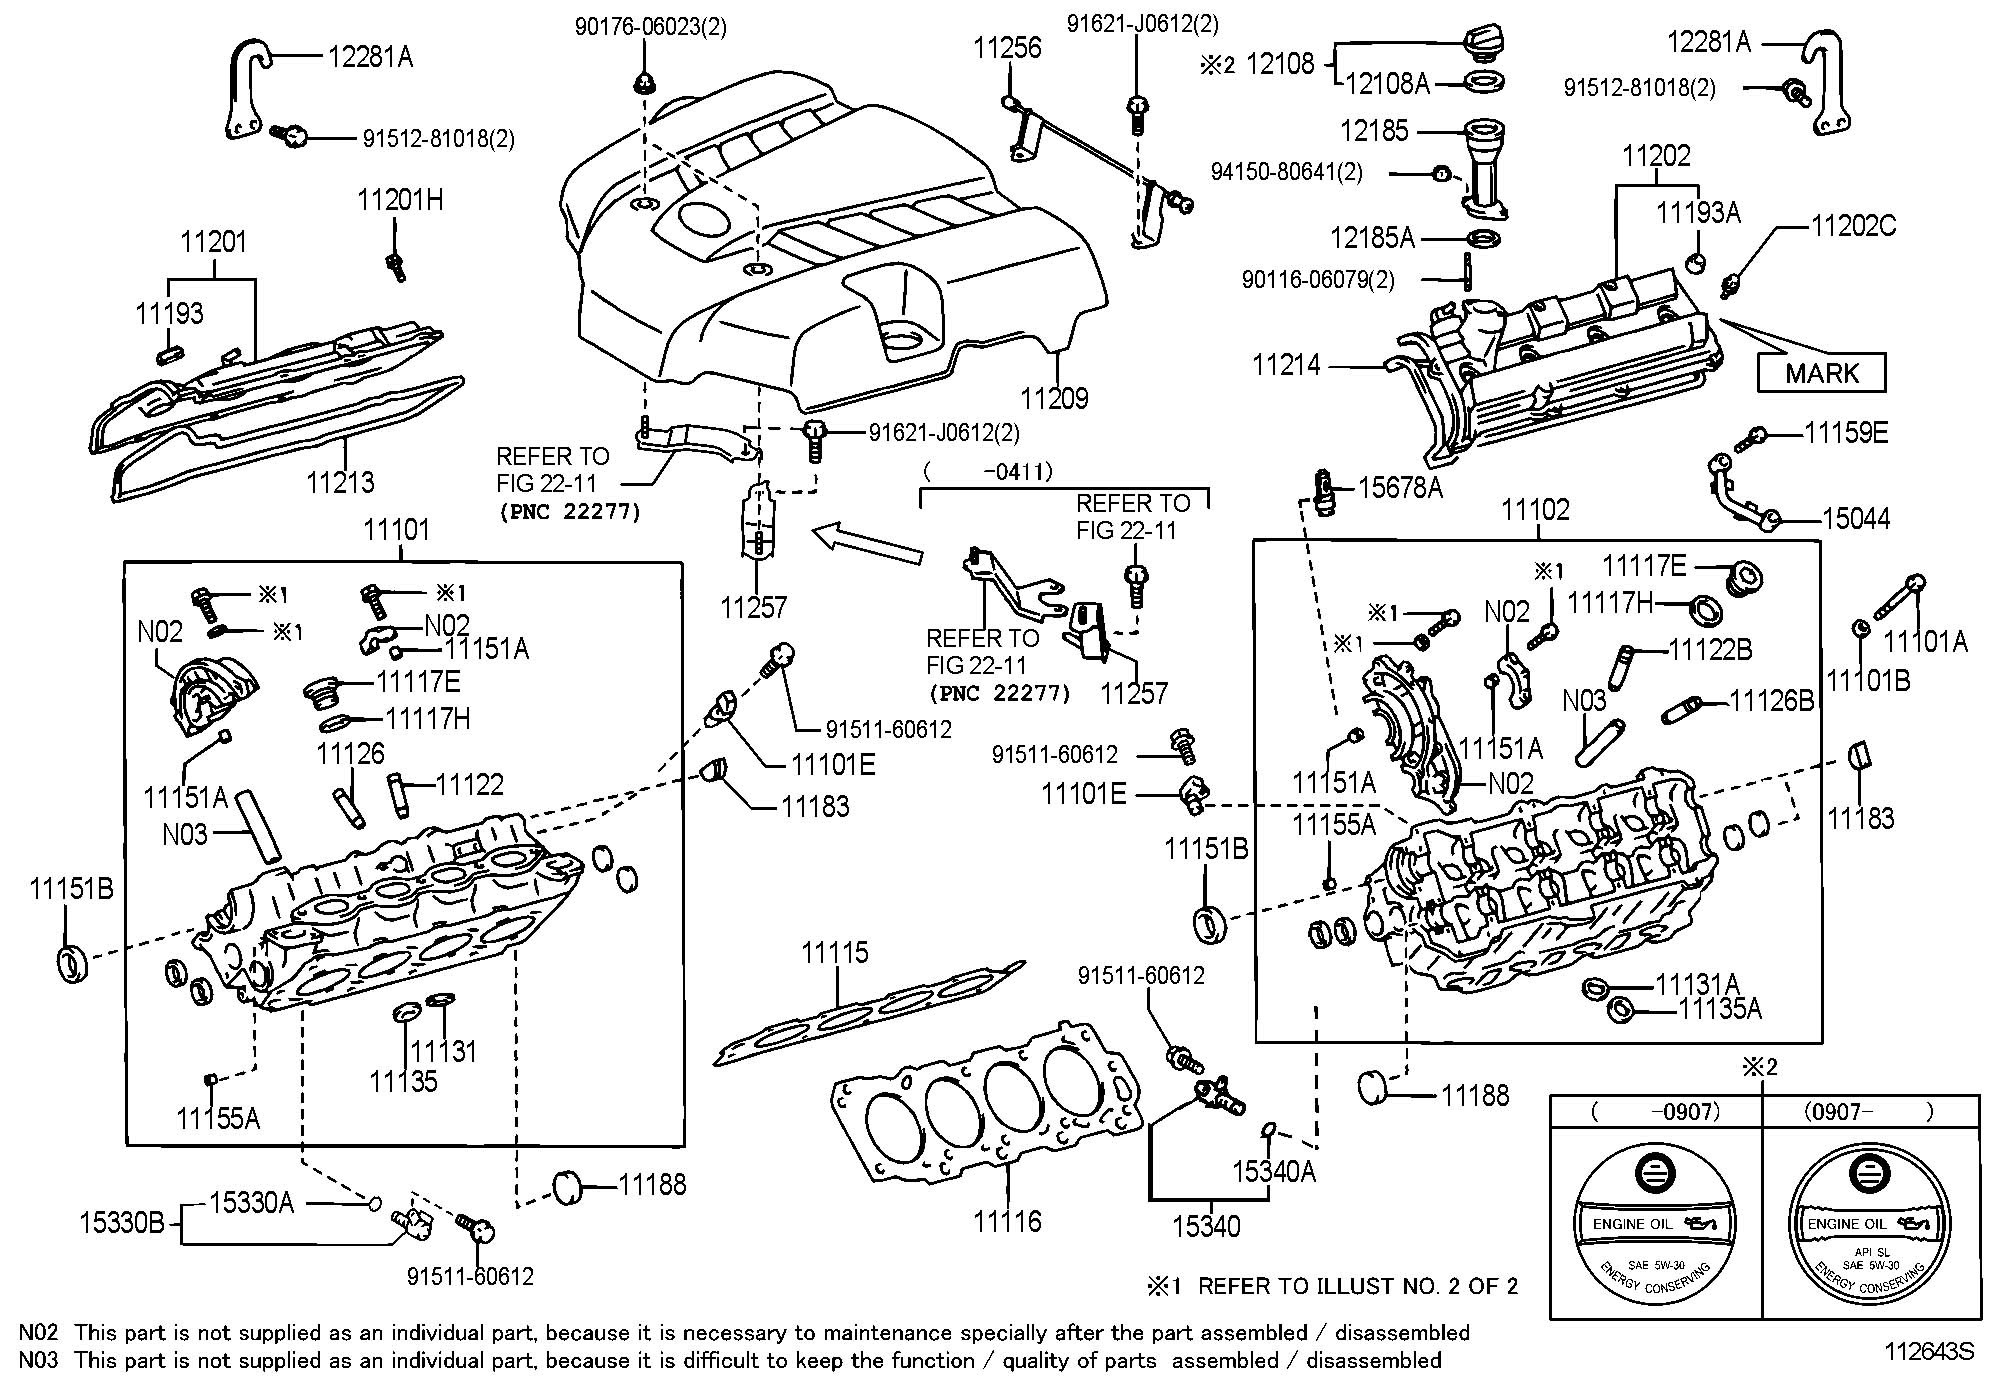 Lexus Rx300 Engine Diagram Lexus Es300 Engine Diagram Lexus Wiring Diagrams  Instructions Of Lexus Rx300 Engine